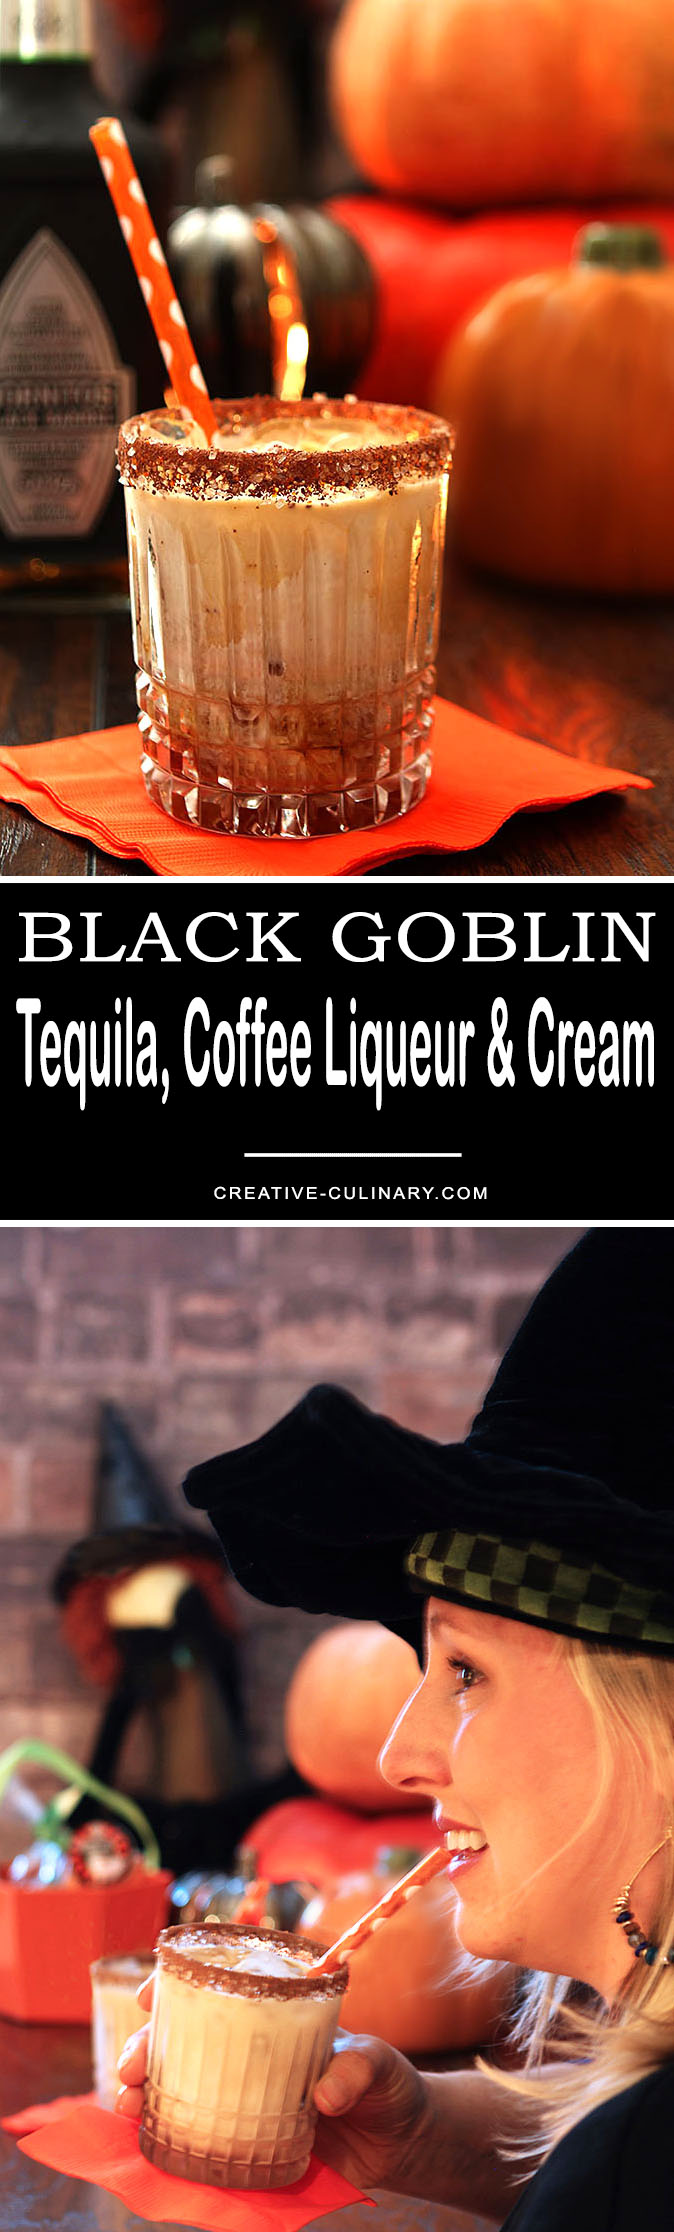 Love Coffee Liqueur and Cream? Take a leap of faith and try something new with the The Black Goblin - Tequila, Coffee Liqueur and Cream. Vodka might be a thing of the past this is SO good!